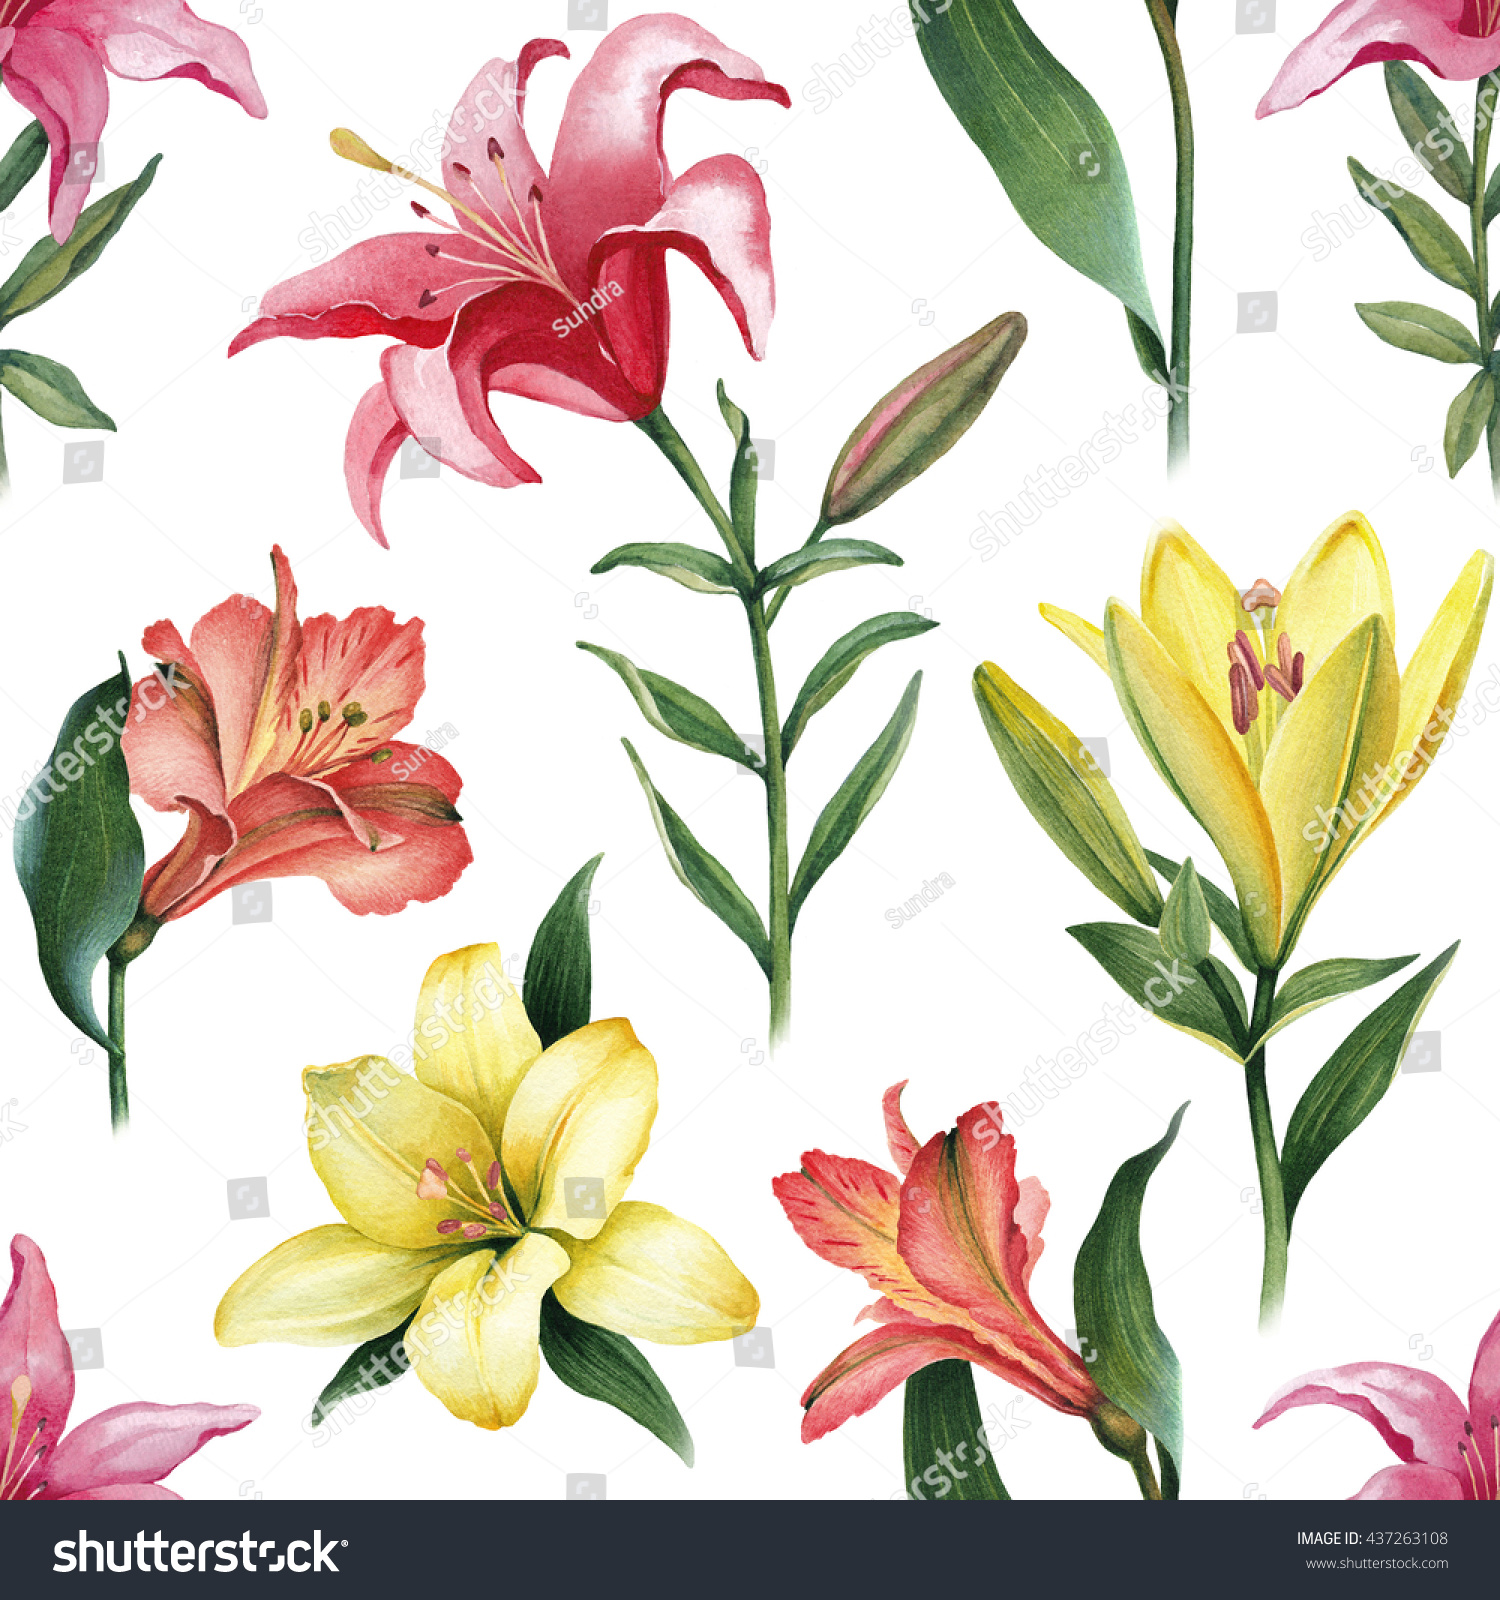 Watercolor Illustrations Lily Flowers Seamless Pattern Stock